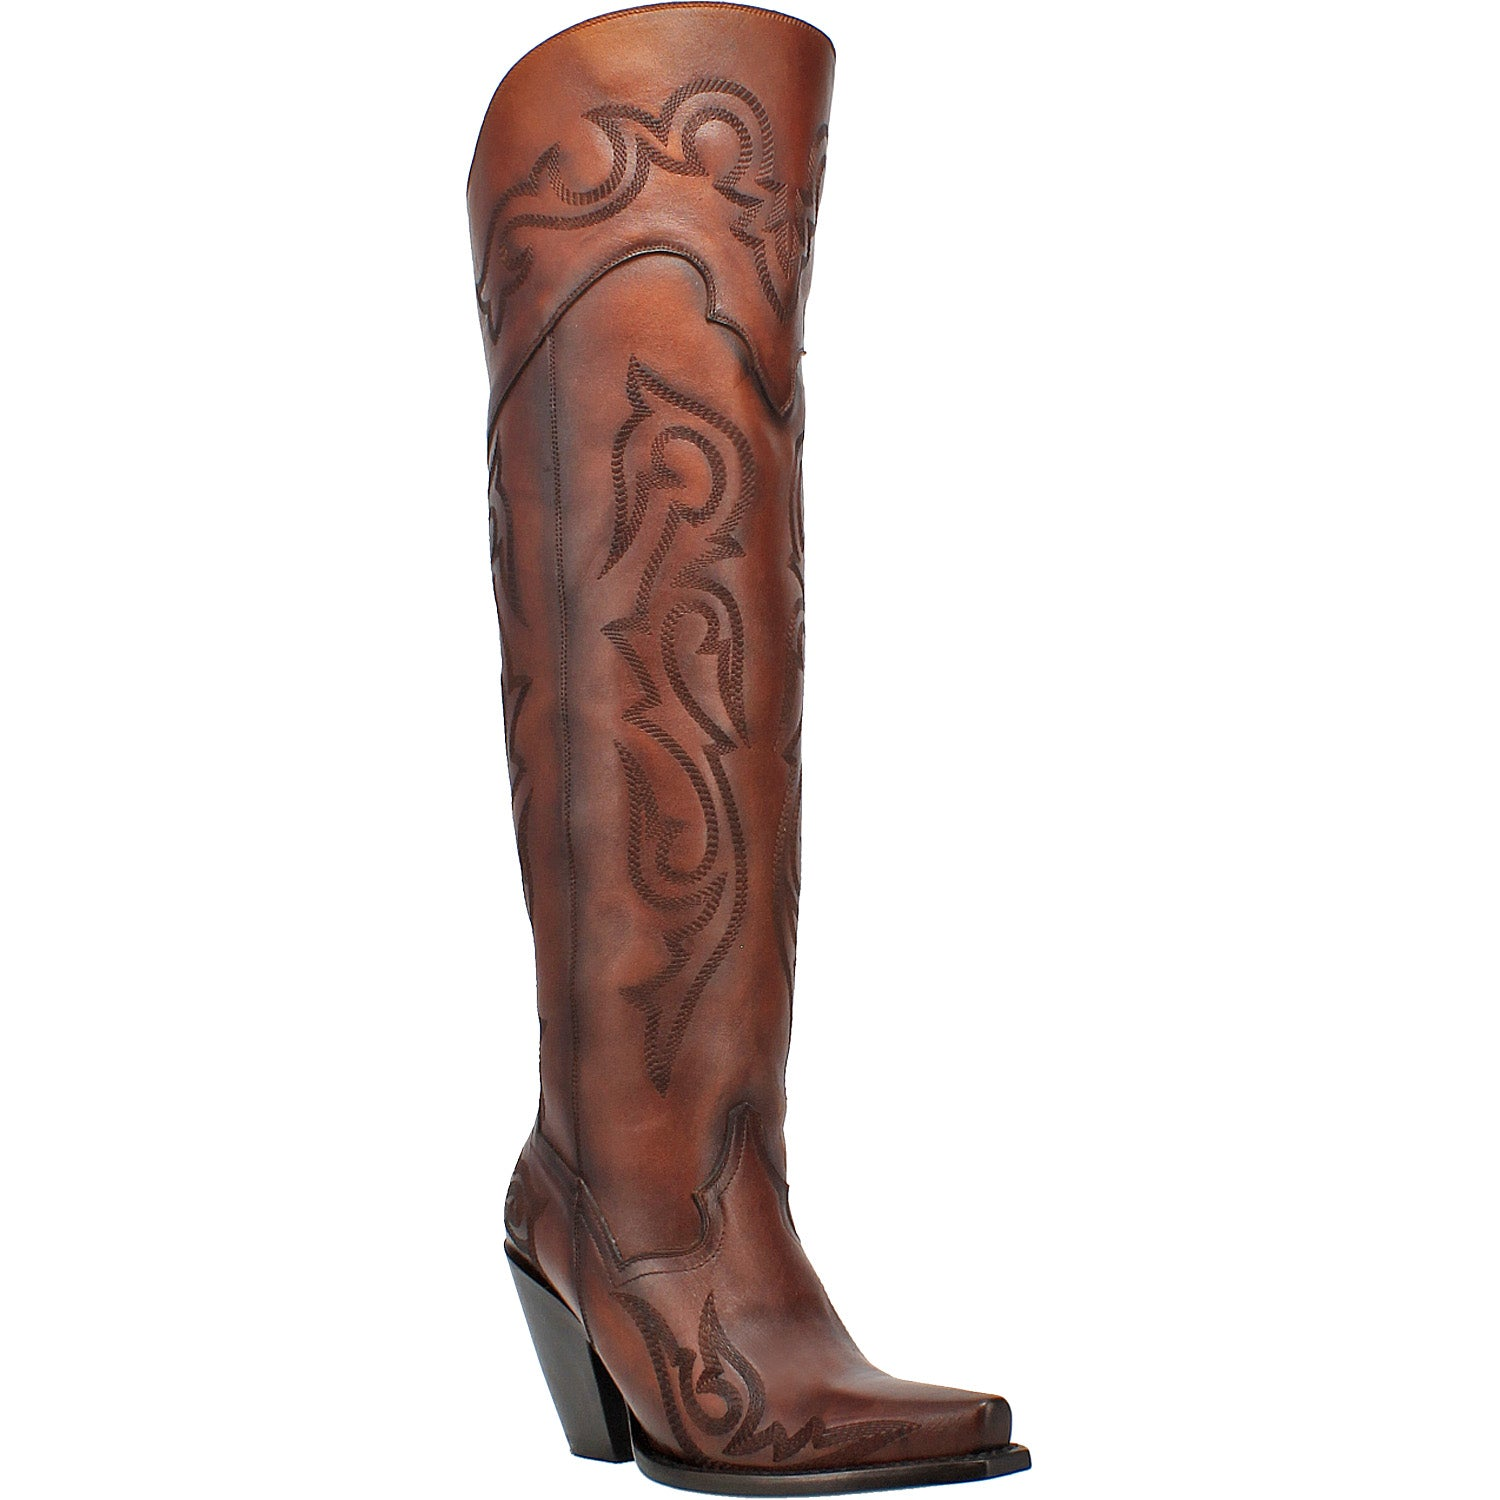 SEDUCTRESS LEATHER BOOT 15677892132906